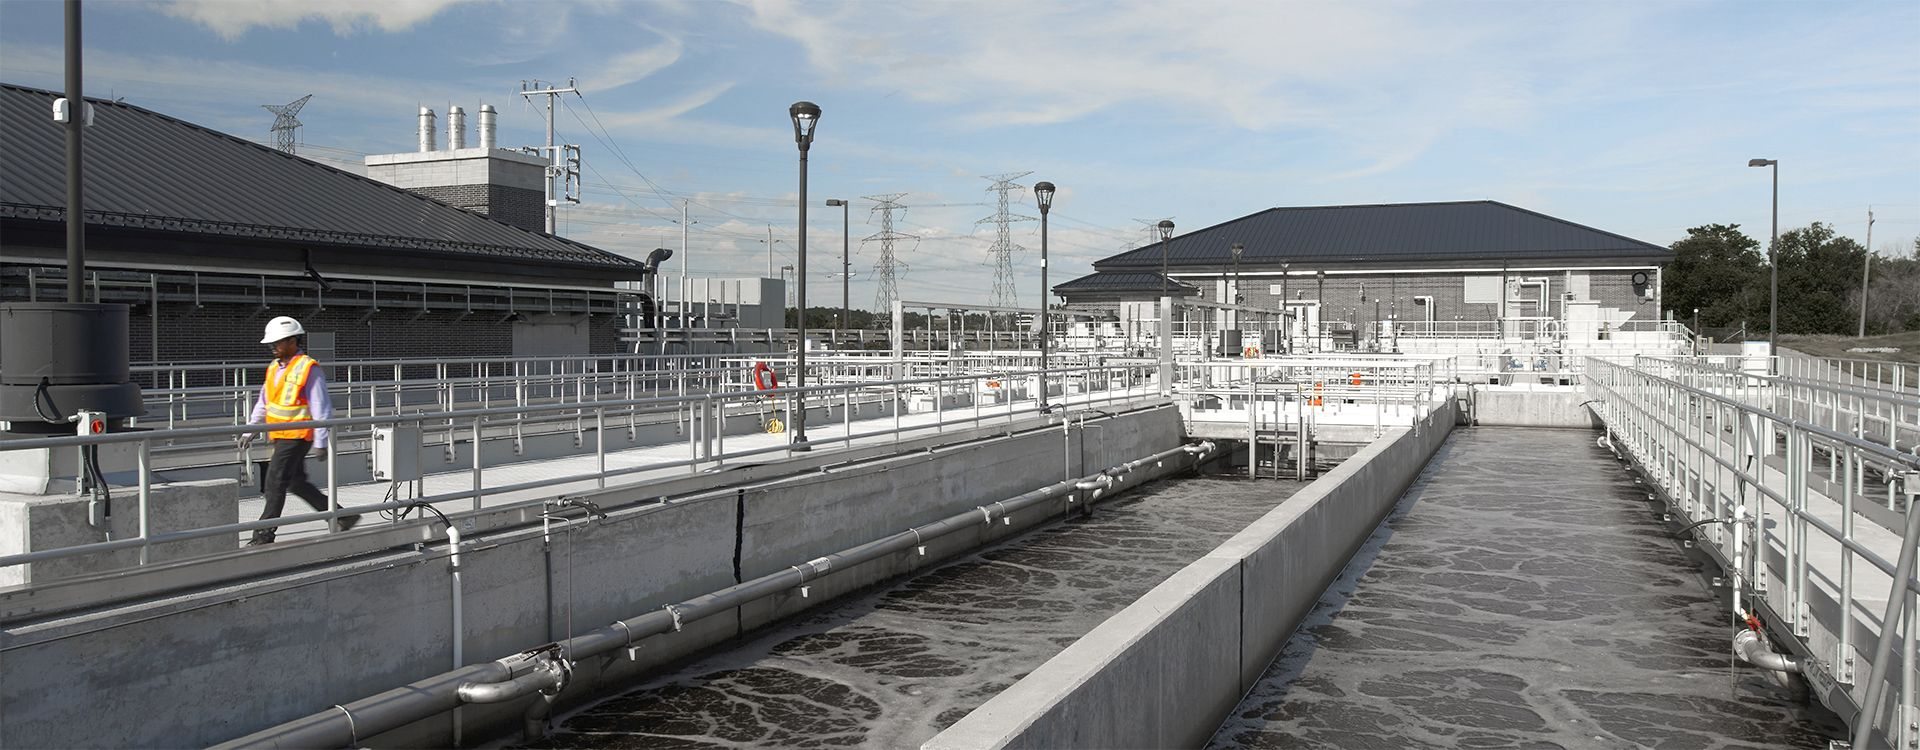 bnr_WastewaterTreatmentandSewageCollectionSystems